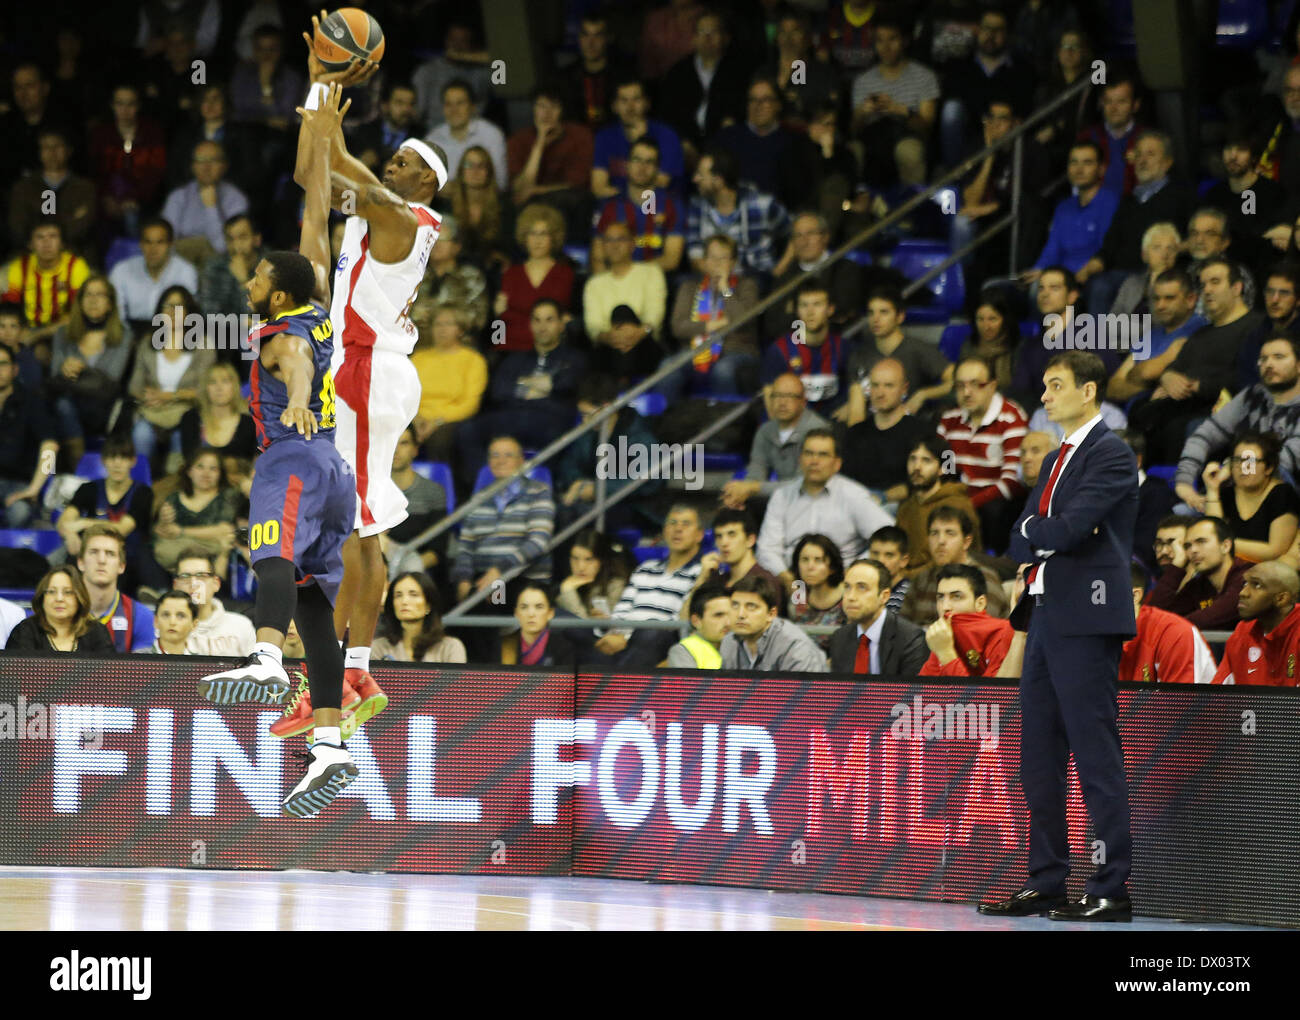 Barcelona, Spain. 14th Mar, 2014. Jacob Pullen and Brent Petway in the match between FC Barcelona and Olympiacos, for the week 10 of the Top 16 Euroleague basketball match at the Palau Blaugrana, the March 14, 2014. Photo: Joan Valls/ Urbanandsport /Nurphoto. Credit:  Urbanandsport/NurPhoto/ZUMAPRESS.com/Alamy Live News - Stock Image